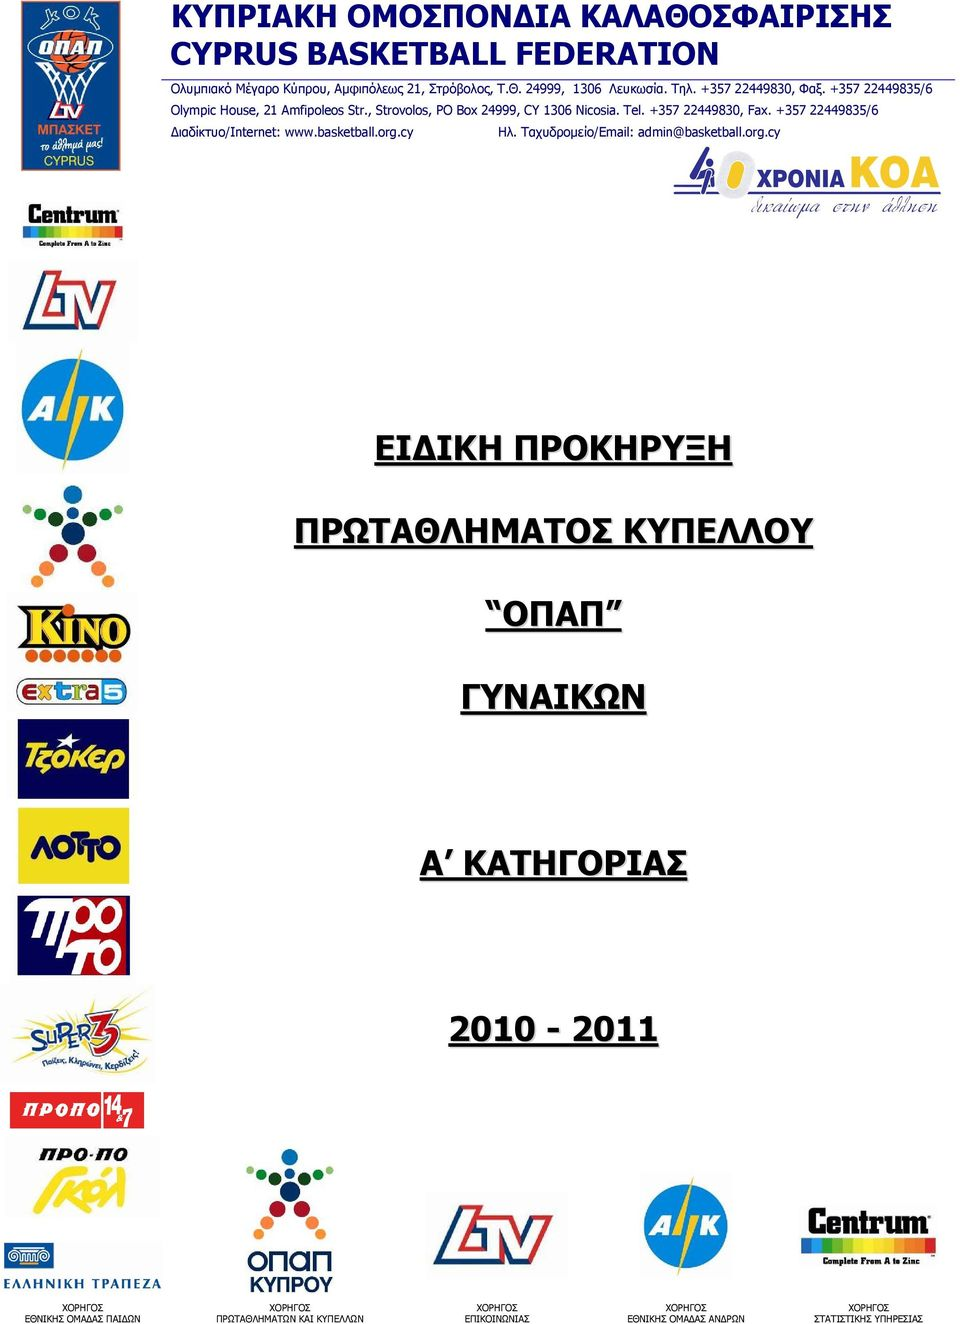 +357 22449835/6 Διαδίκτυο/Internet: www.basketball.org.